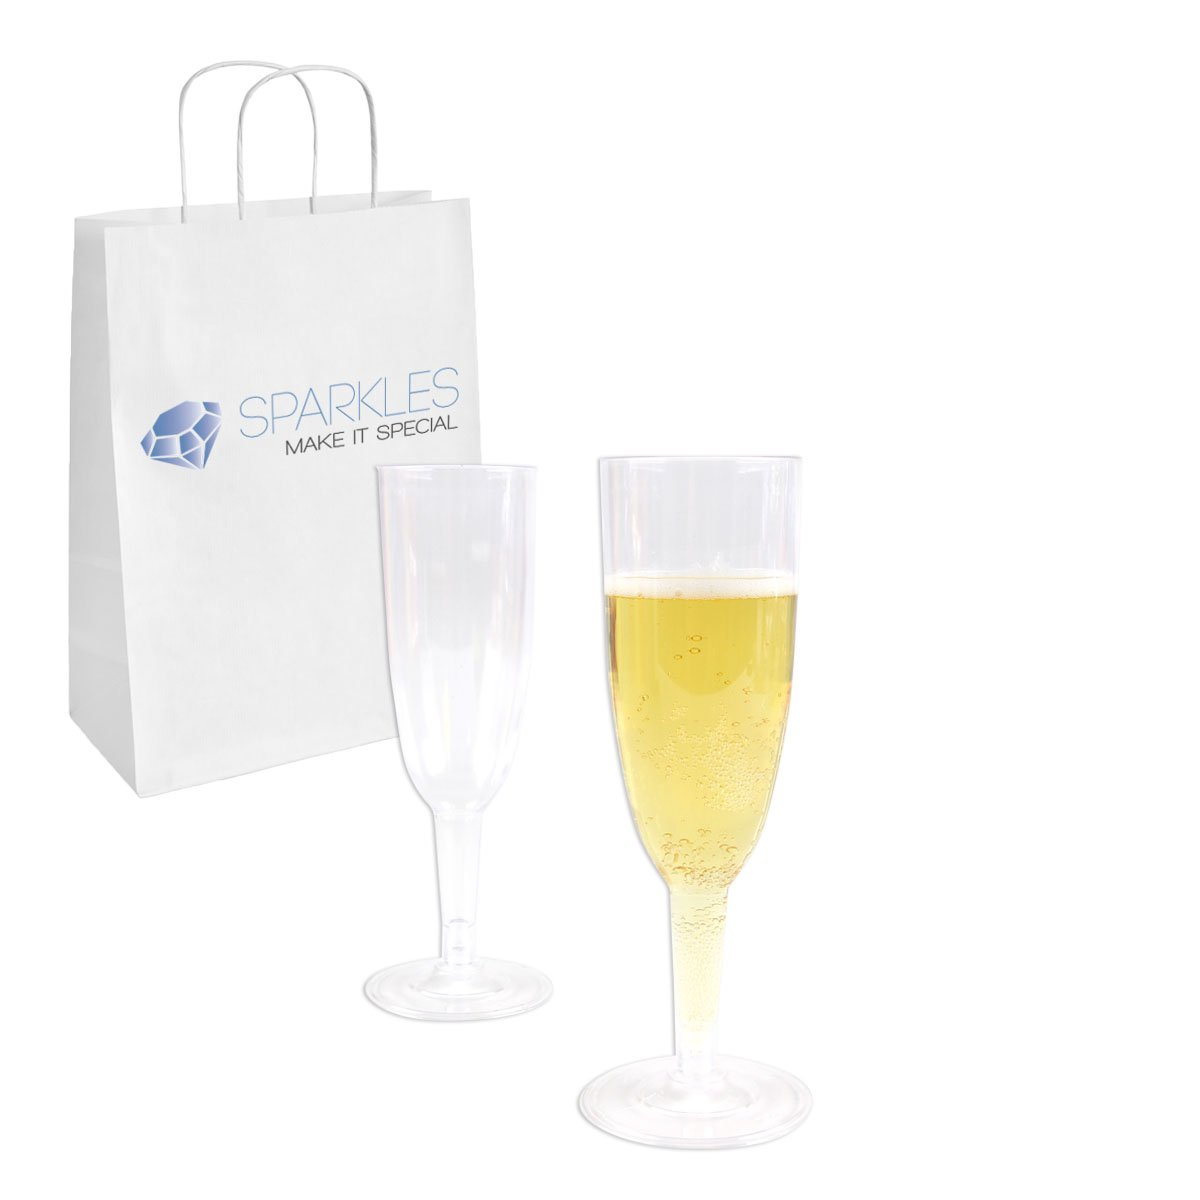 Sparkles Make It Special 120-pcs 6.5 Inch Plastic Champagne Glasses Flutes Wedding Party Clear by Sparkles Make It Special